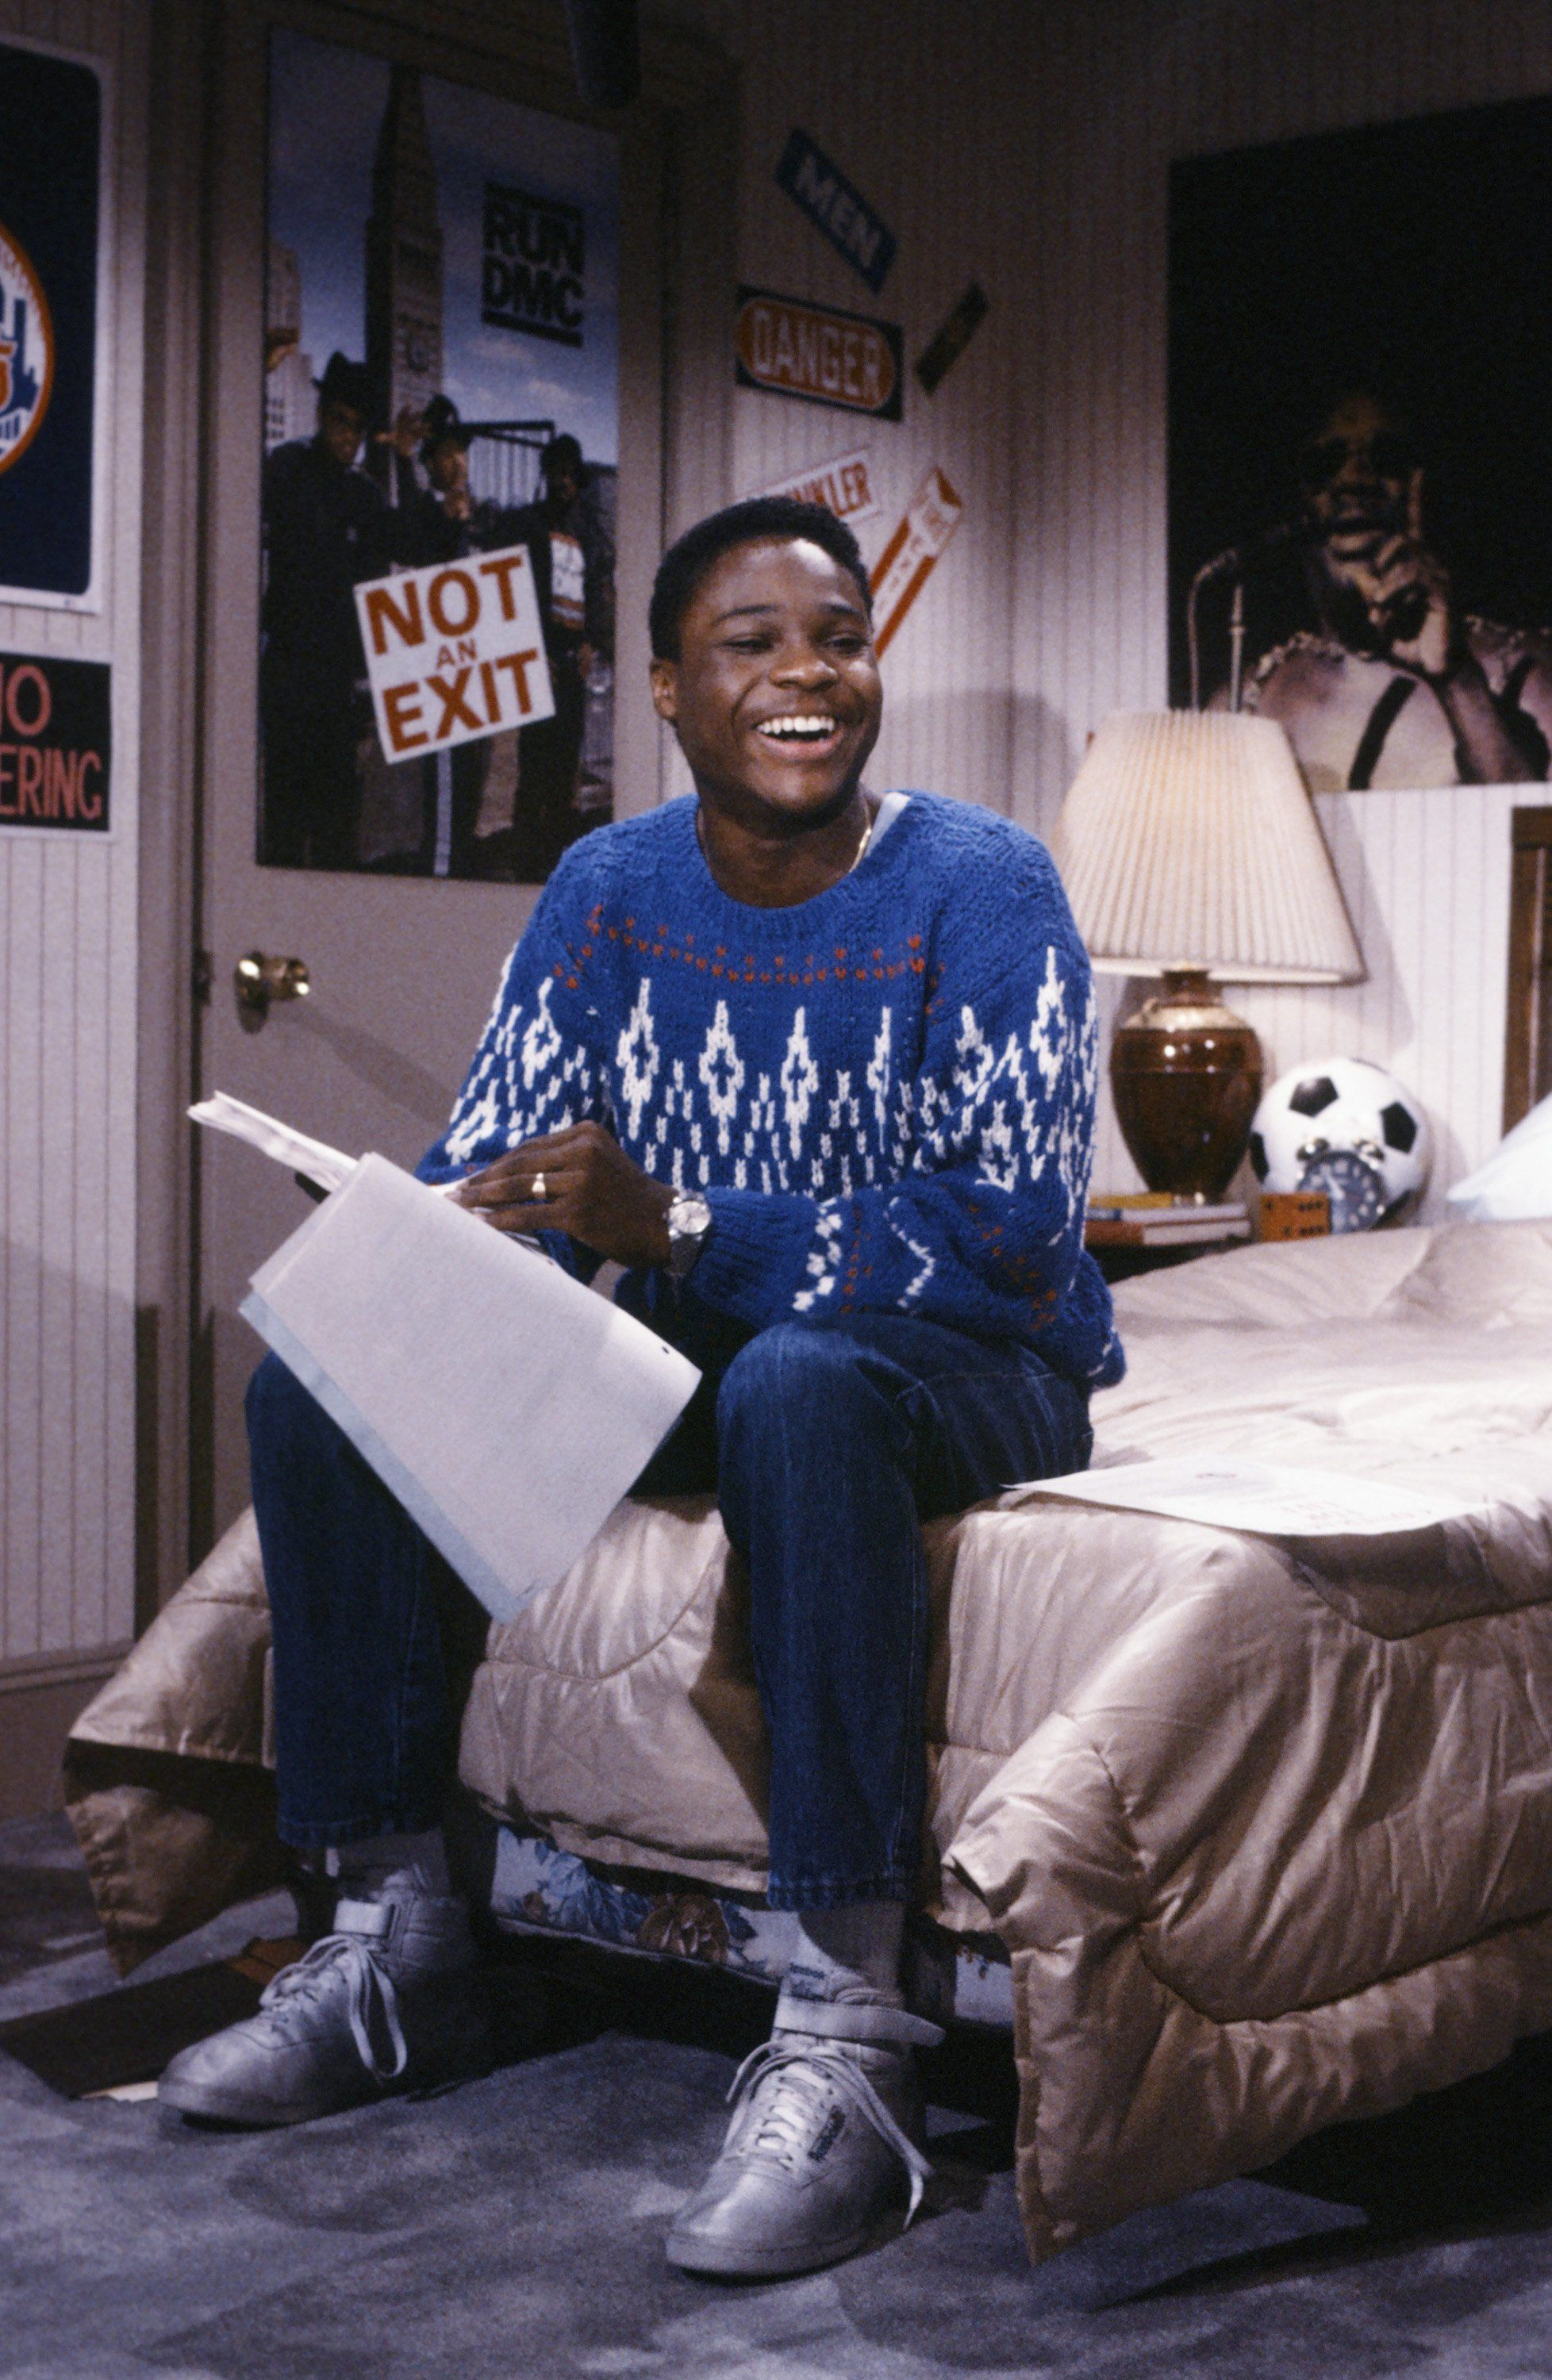 SATURDAY NIGHT LIVE -- Episode 2 -- Pictured: Malcolm-Jamal Warner during 'Parent-Teen Drunk Driving Contract' skit on October 10, 1986 -- Photo by: Alan Singer/NBC/NBCU Photo Bank